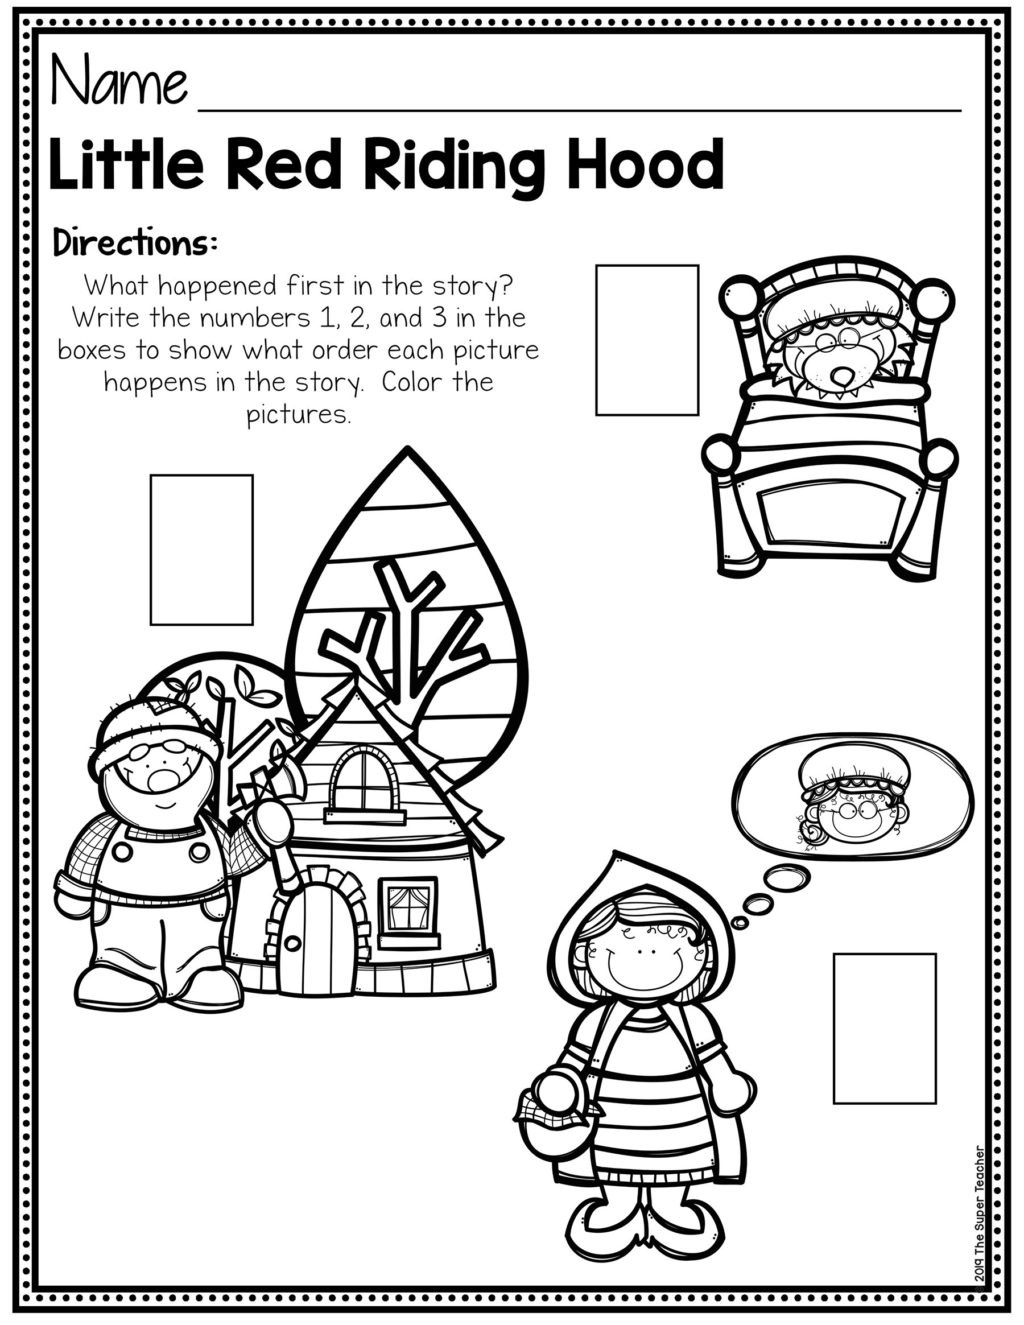 Internet Safety Worksheets Printable Worksheet Times Tablece Sheets Holiday Worksheets when for